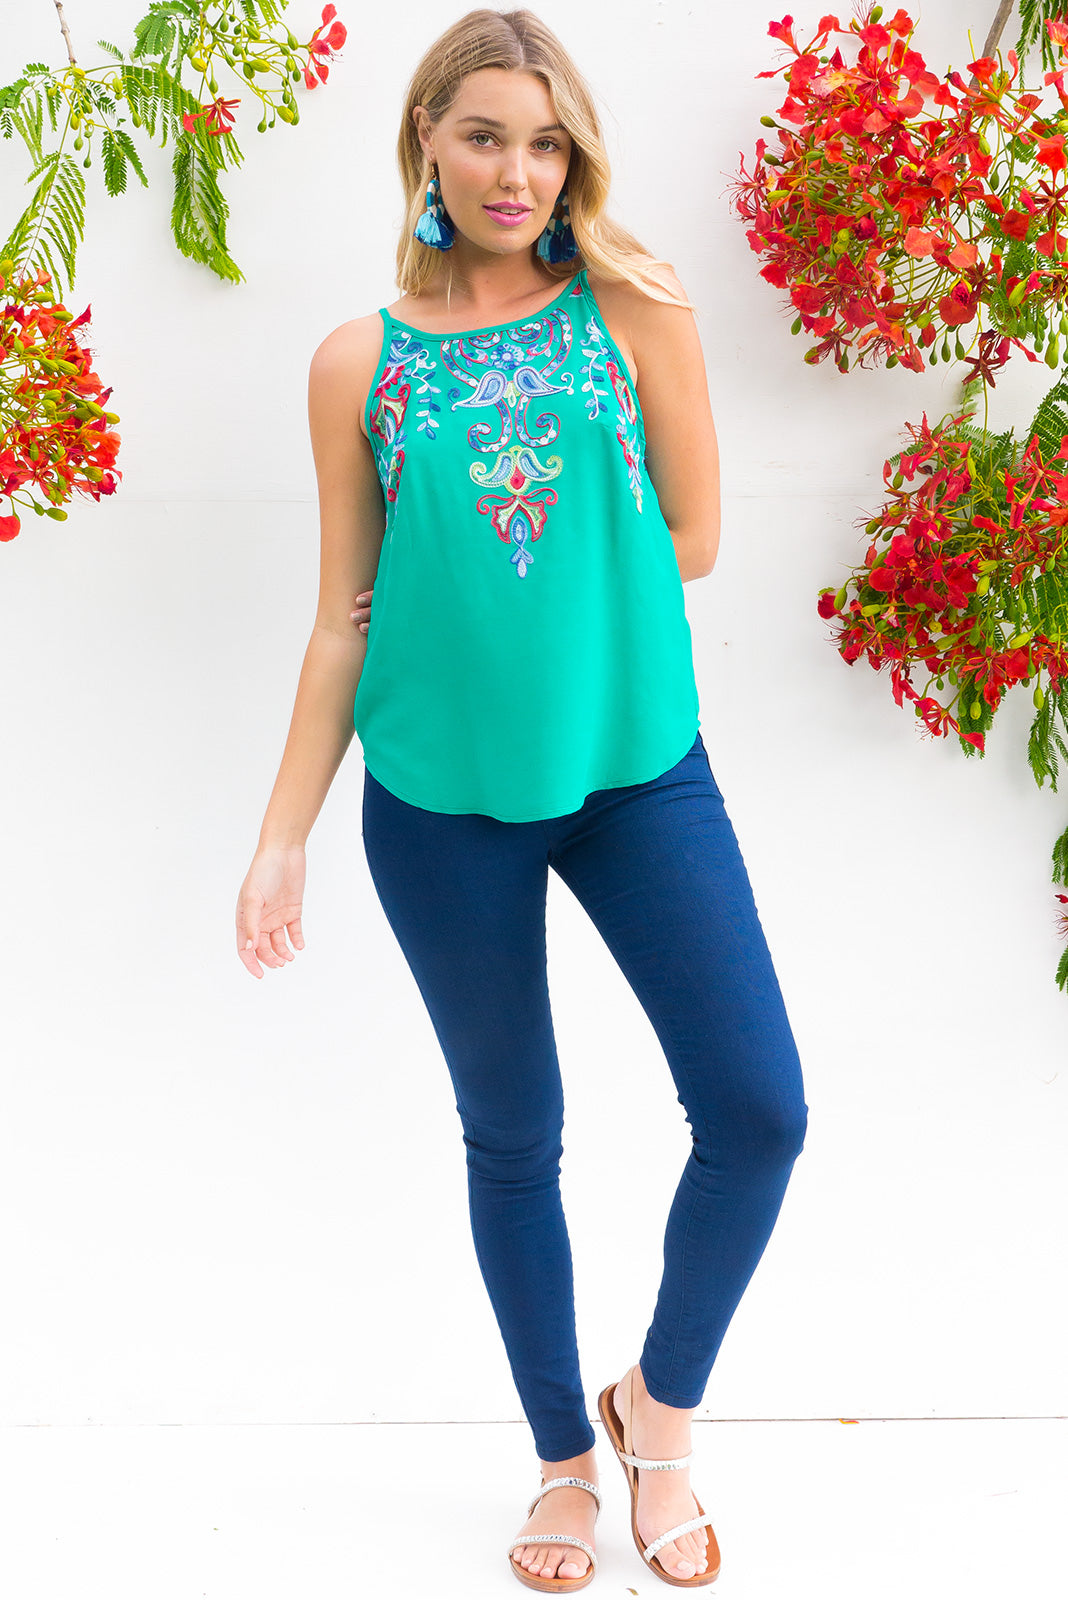 In Love Embroidered Chemise top in emerald green with bright paisley embroidery around the front and back neckline